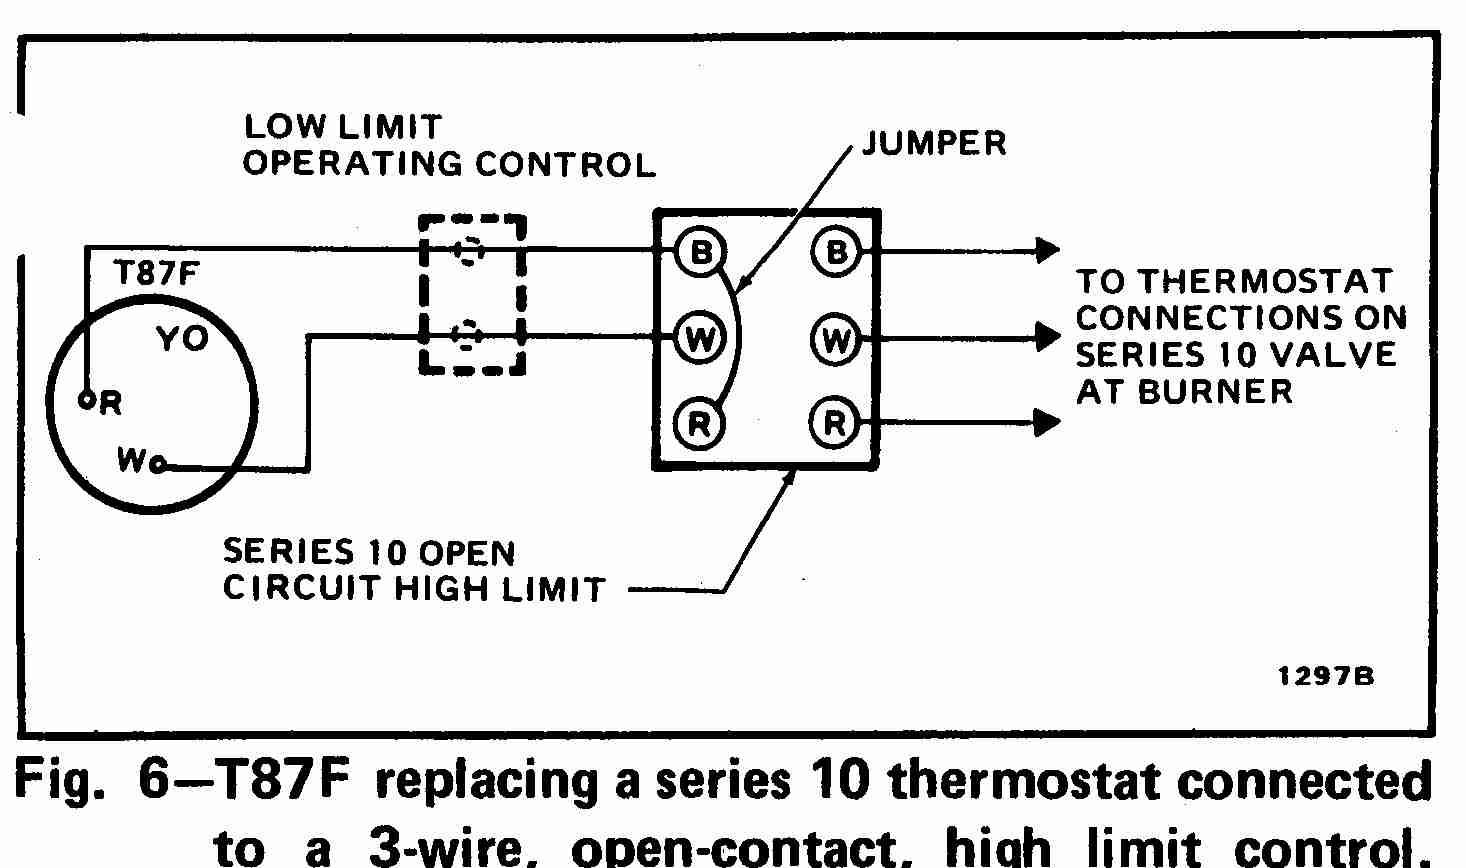 TT_T87F_0002_3WHL_DJF room thermostat wiring diagrams for hvac systems boiler control wiring diagrams at soozxer.org